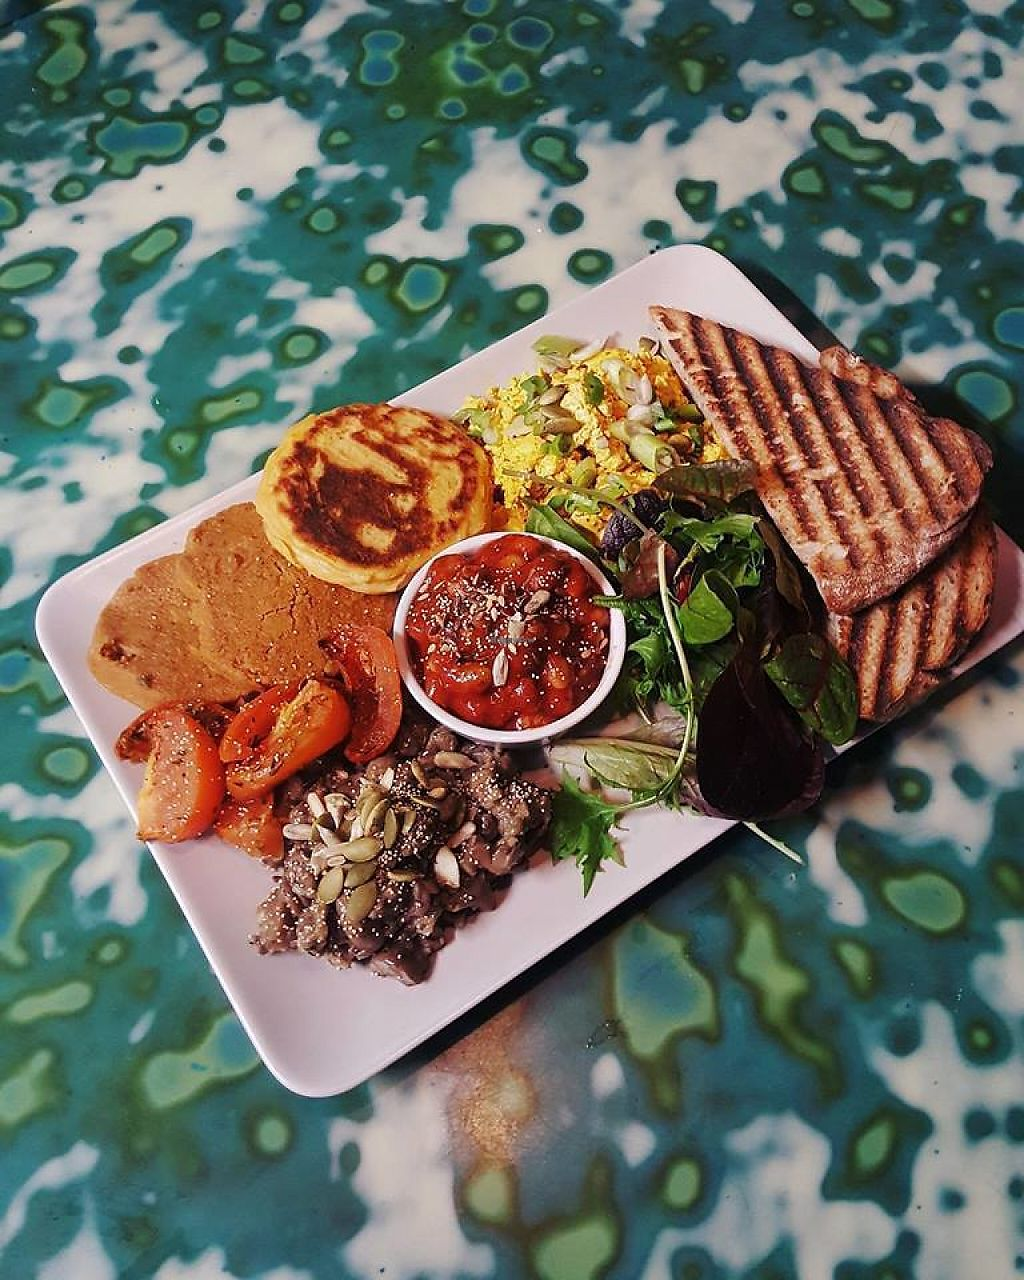 """Photo of Something at The Glad Cafe  by <a href=""""/members/profile/community5"""">community5</a> <br/>Vegan big breakfast <br/> May 15, 2017  - <a href='/contact/abuse/image/92165/259055'>Report</a>"""